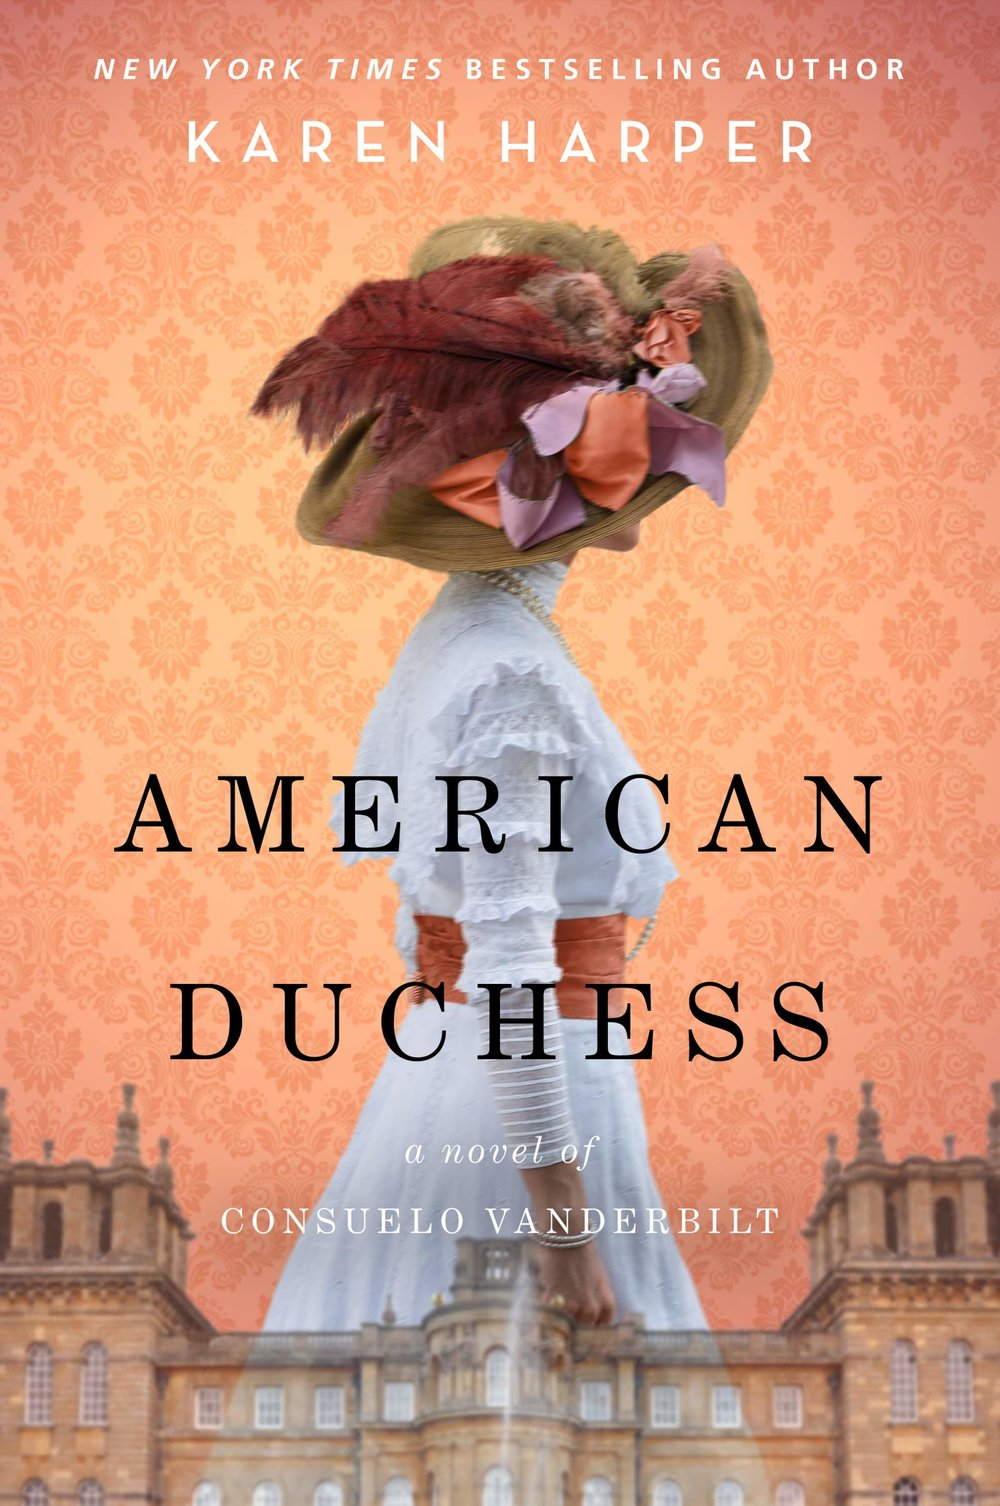 American Duchess - Book Review - Hasty Book List